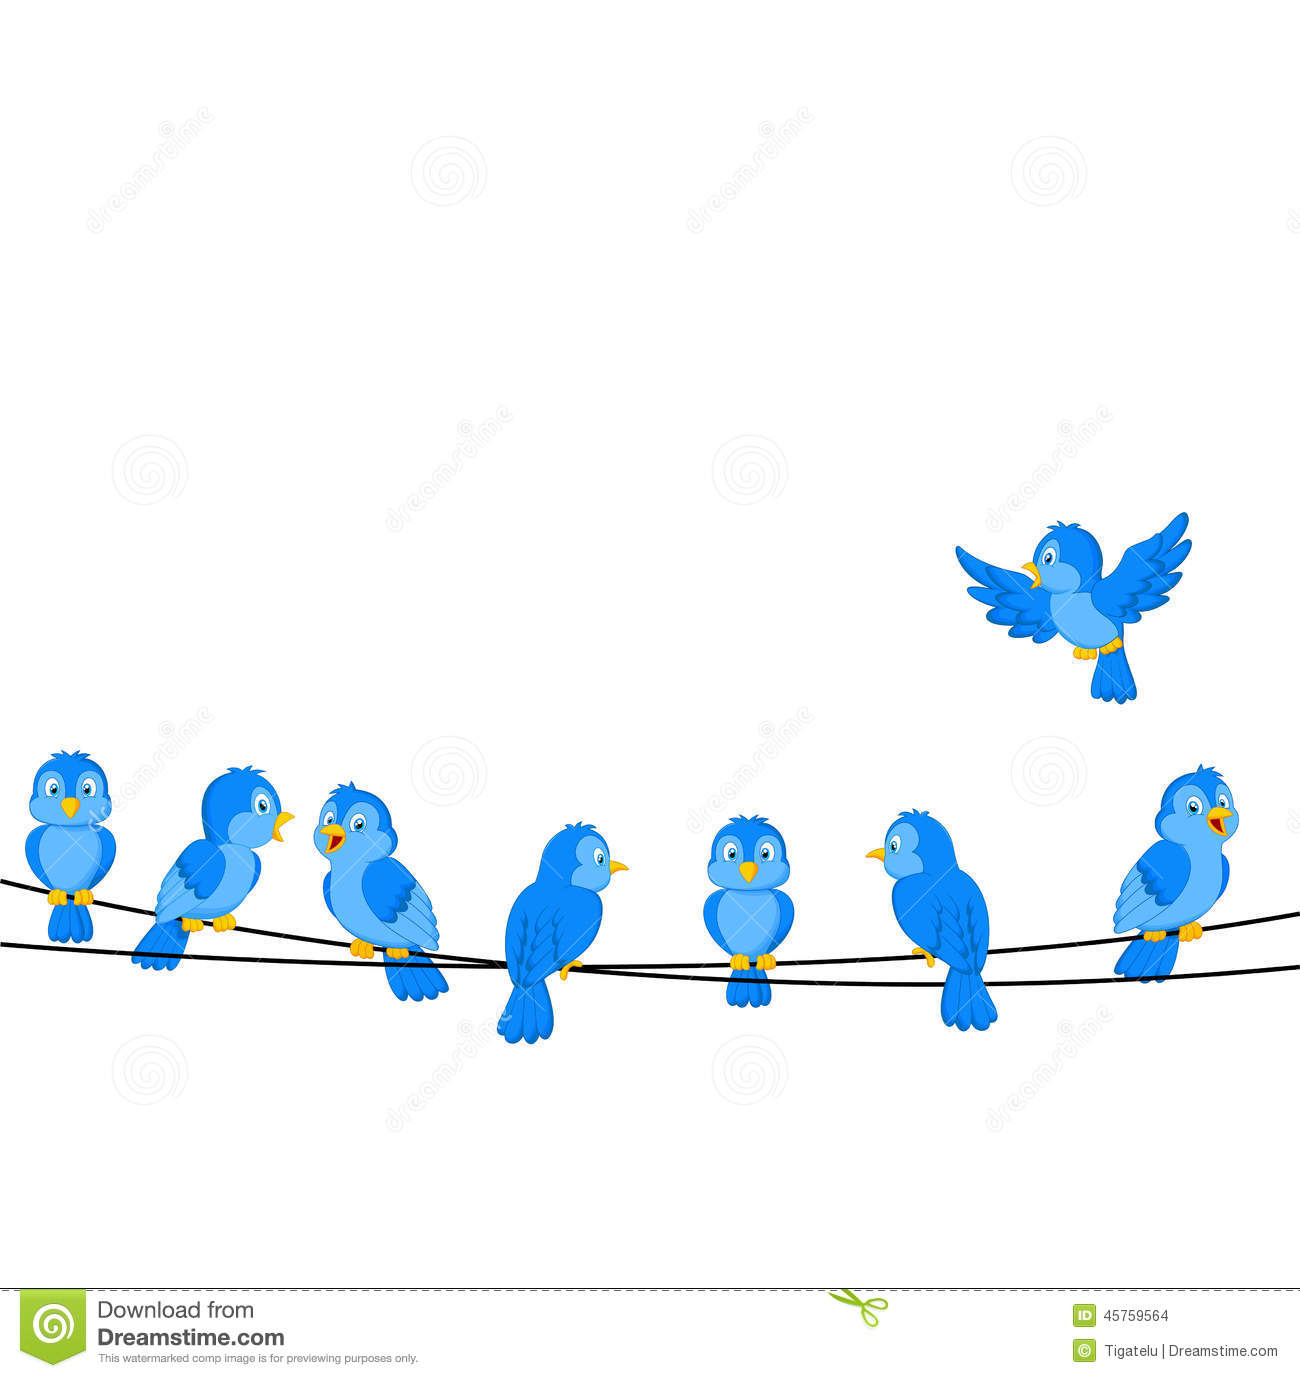 Cartoon Blue Bird On Wire Stock Vector - Image: 45759564